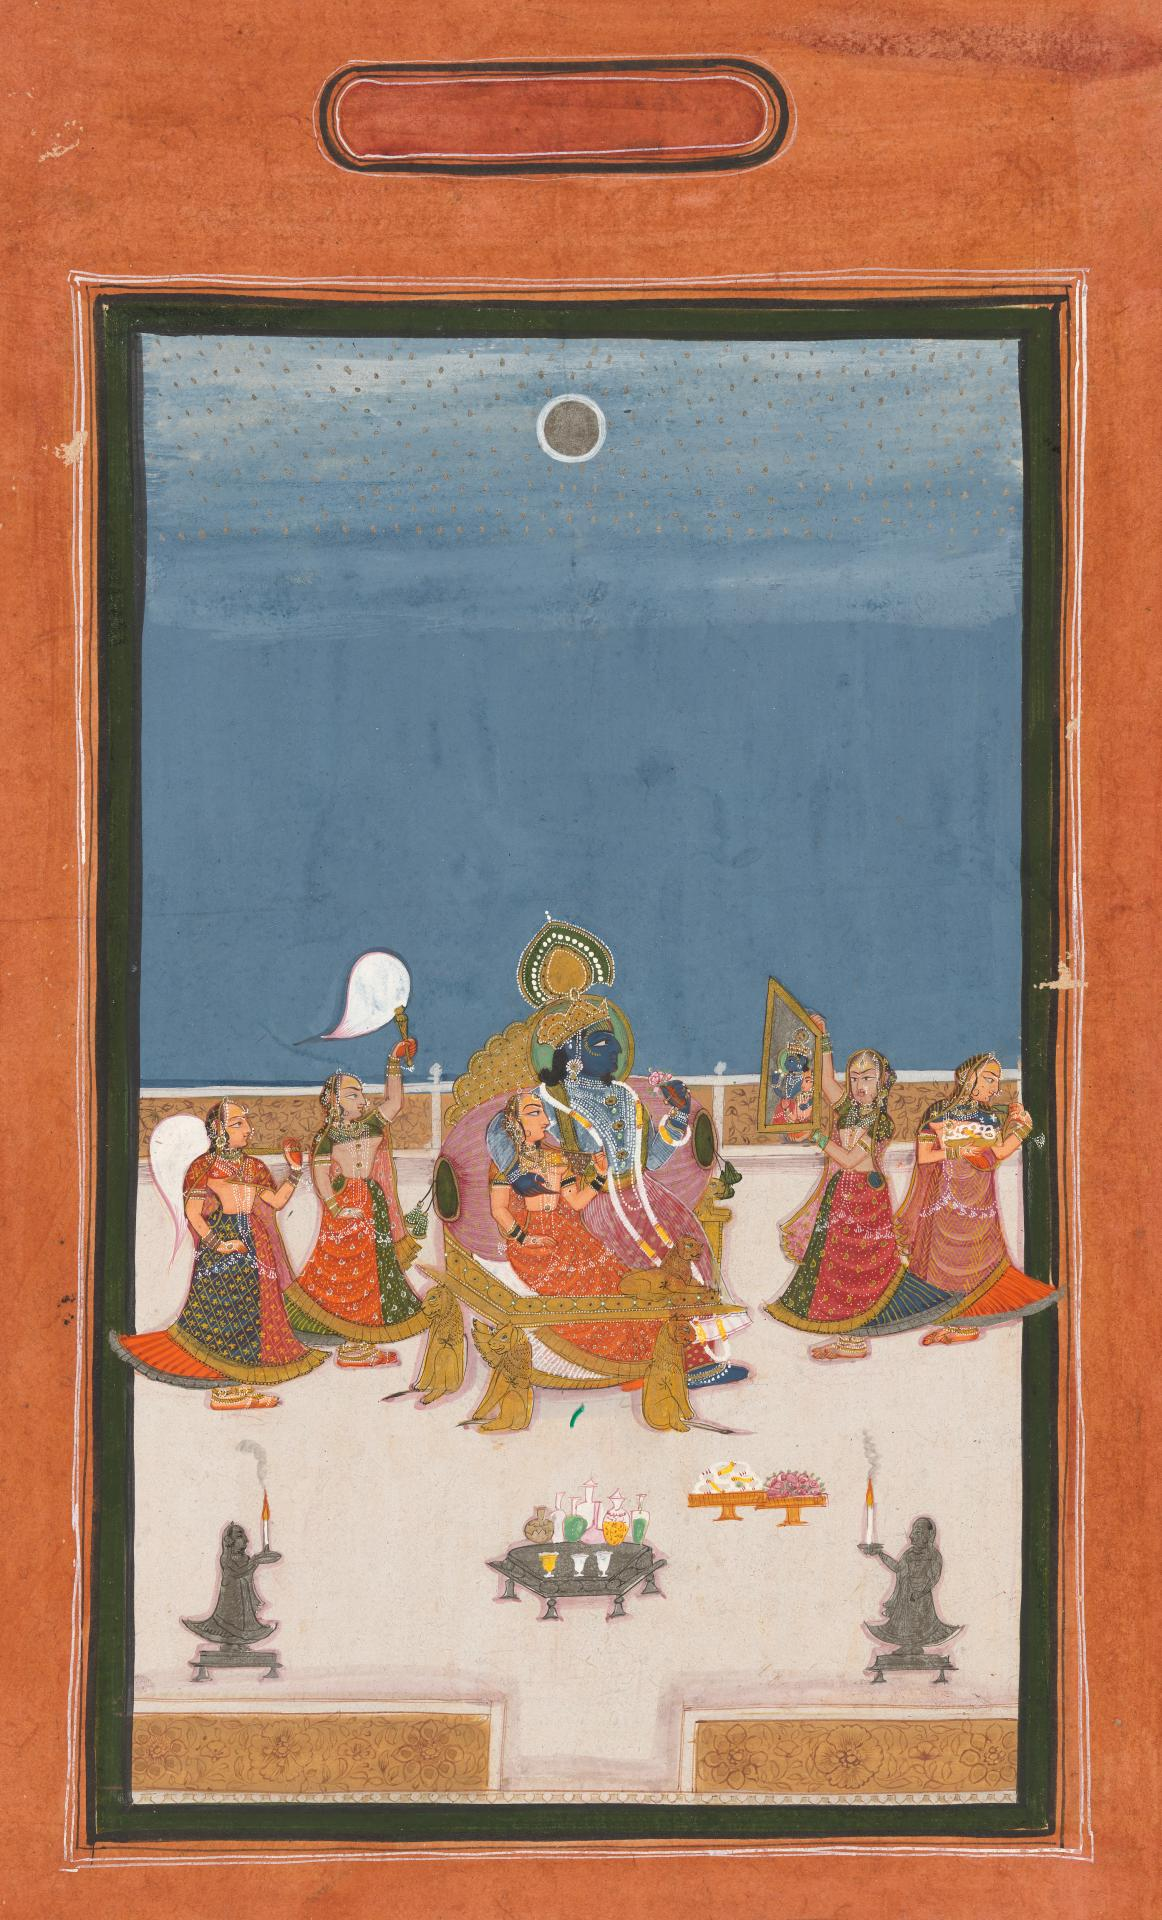 Krishna and Radha looking in a mirror